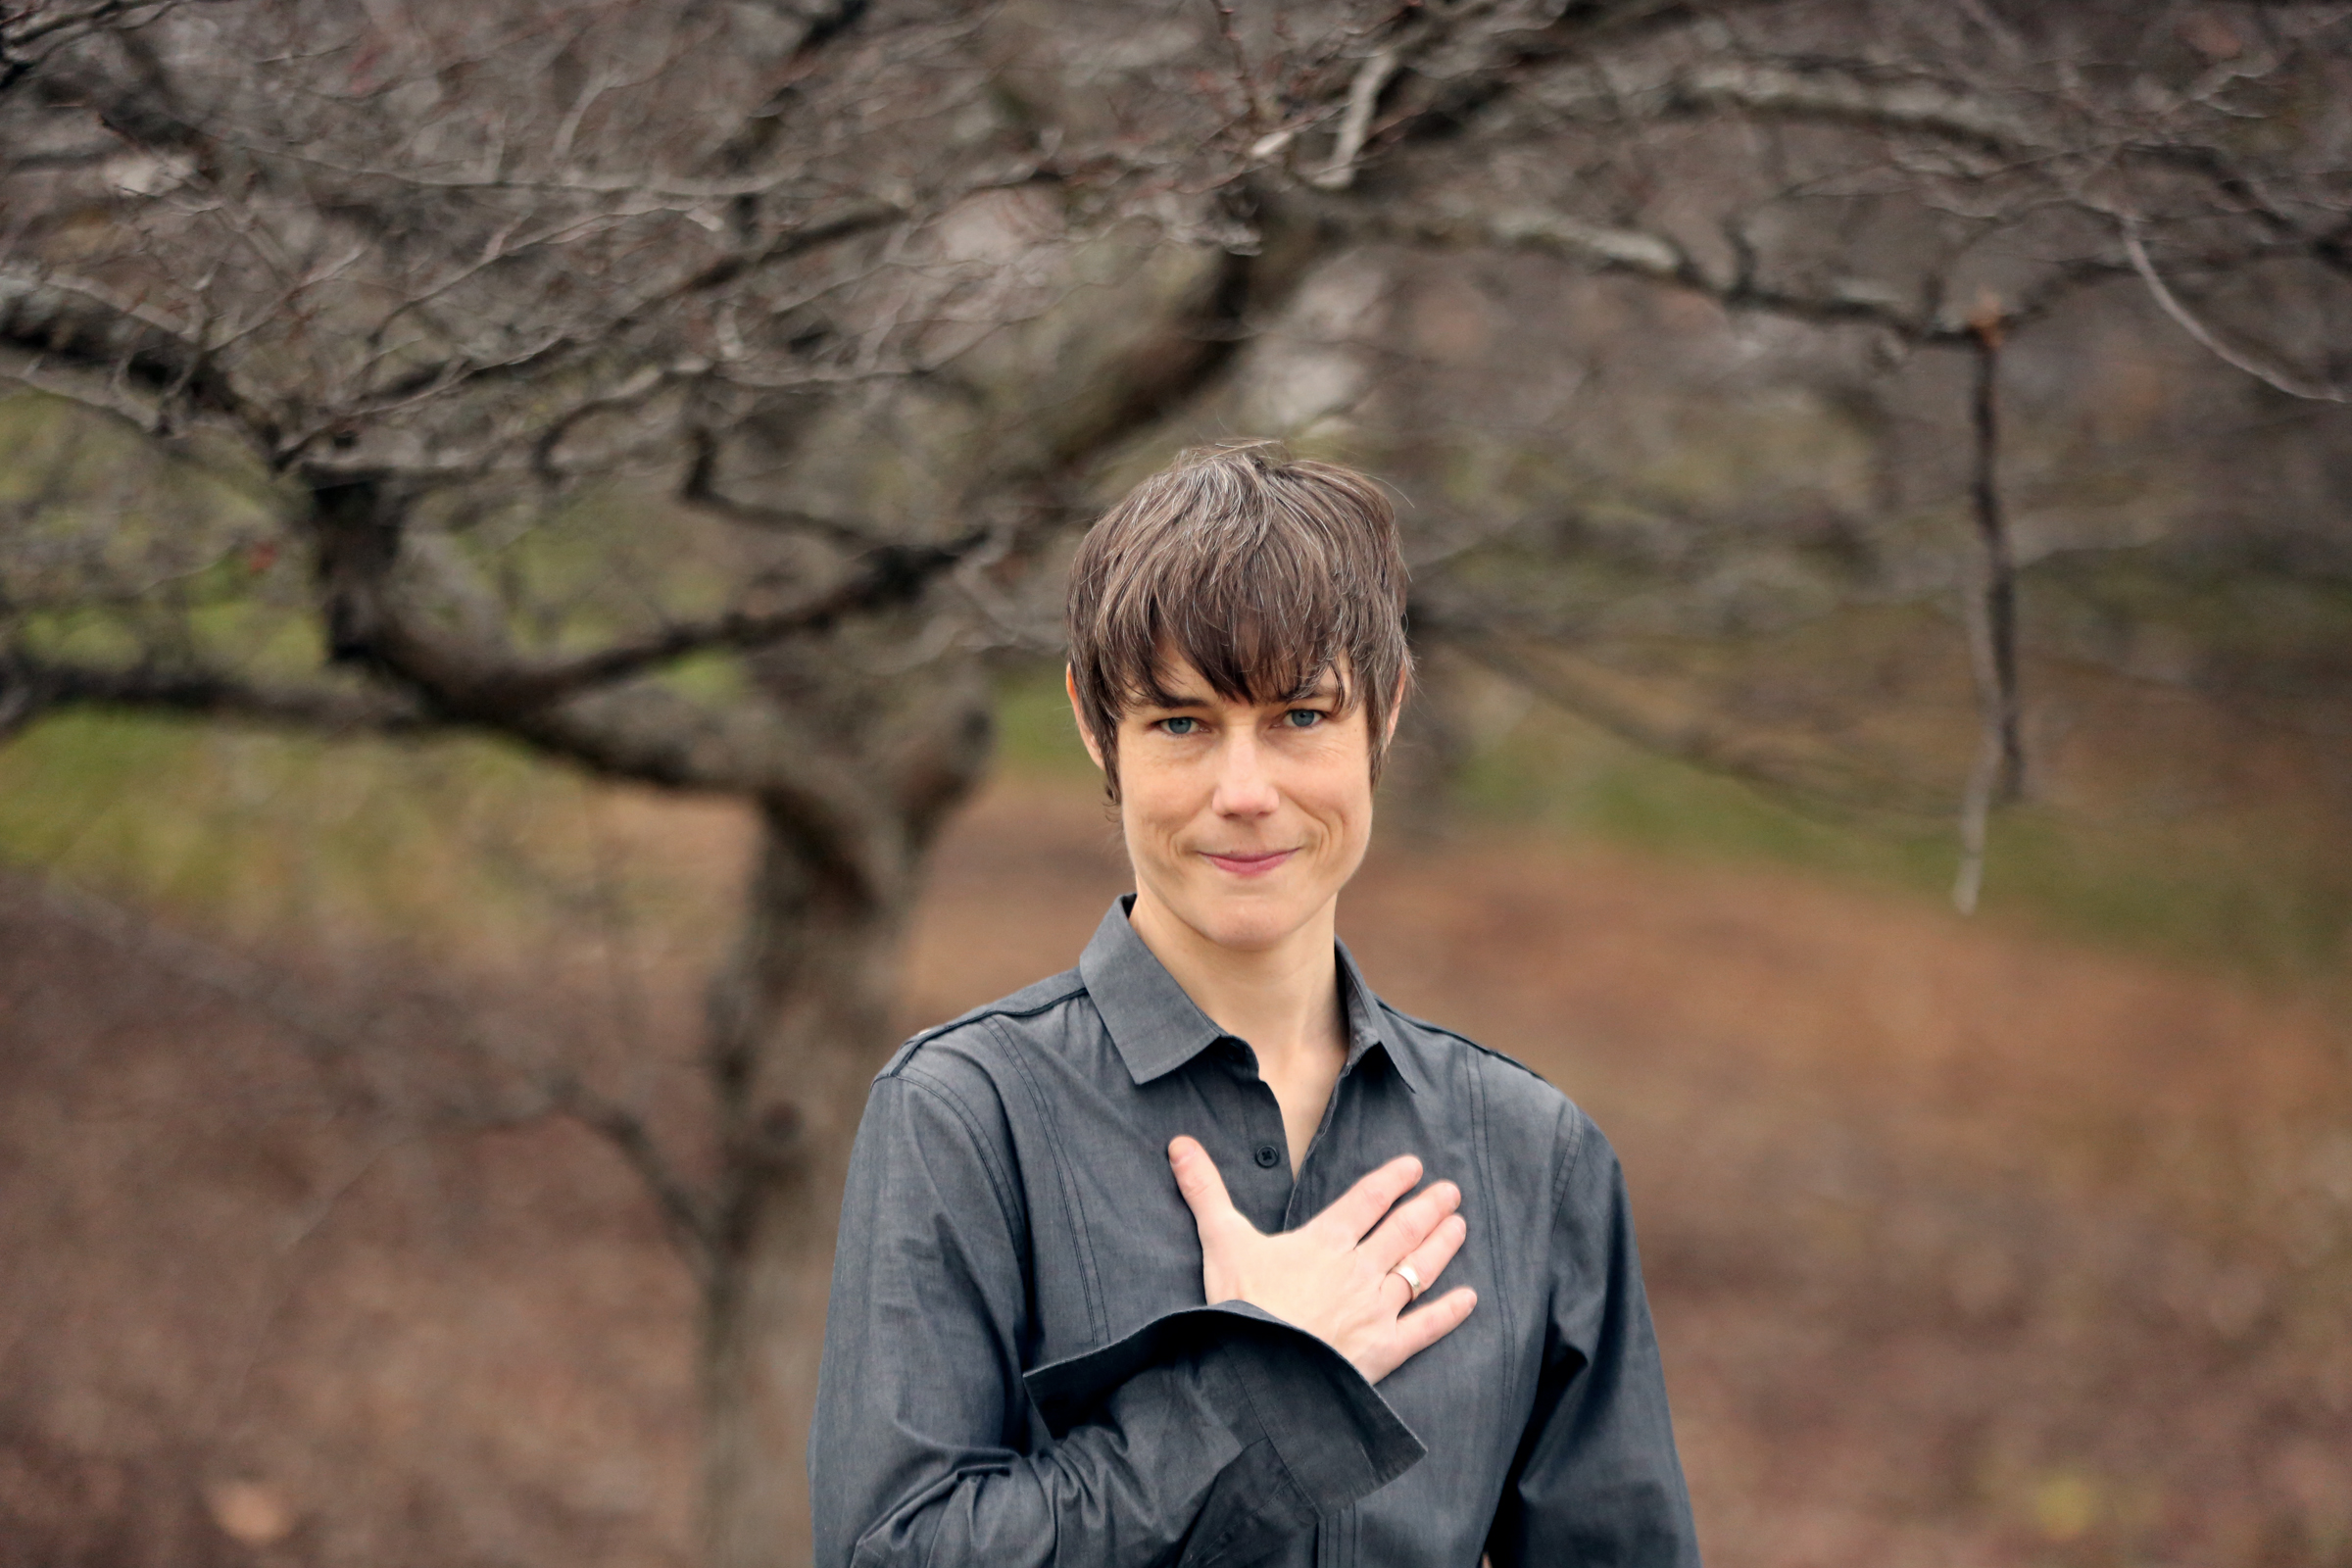 Q&A: Ellis Brings Her Heart to Unity's World Day of Prayer